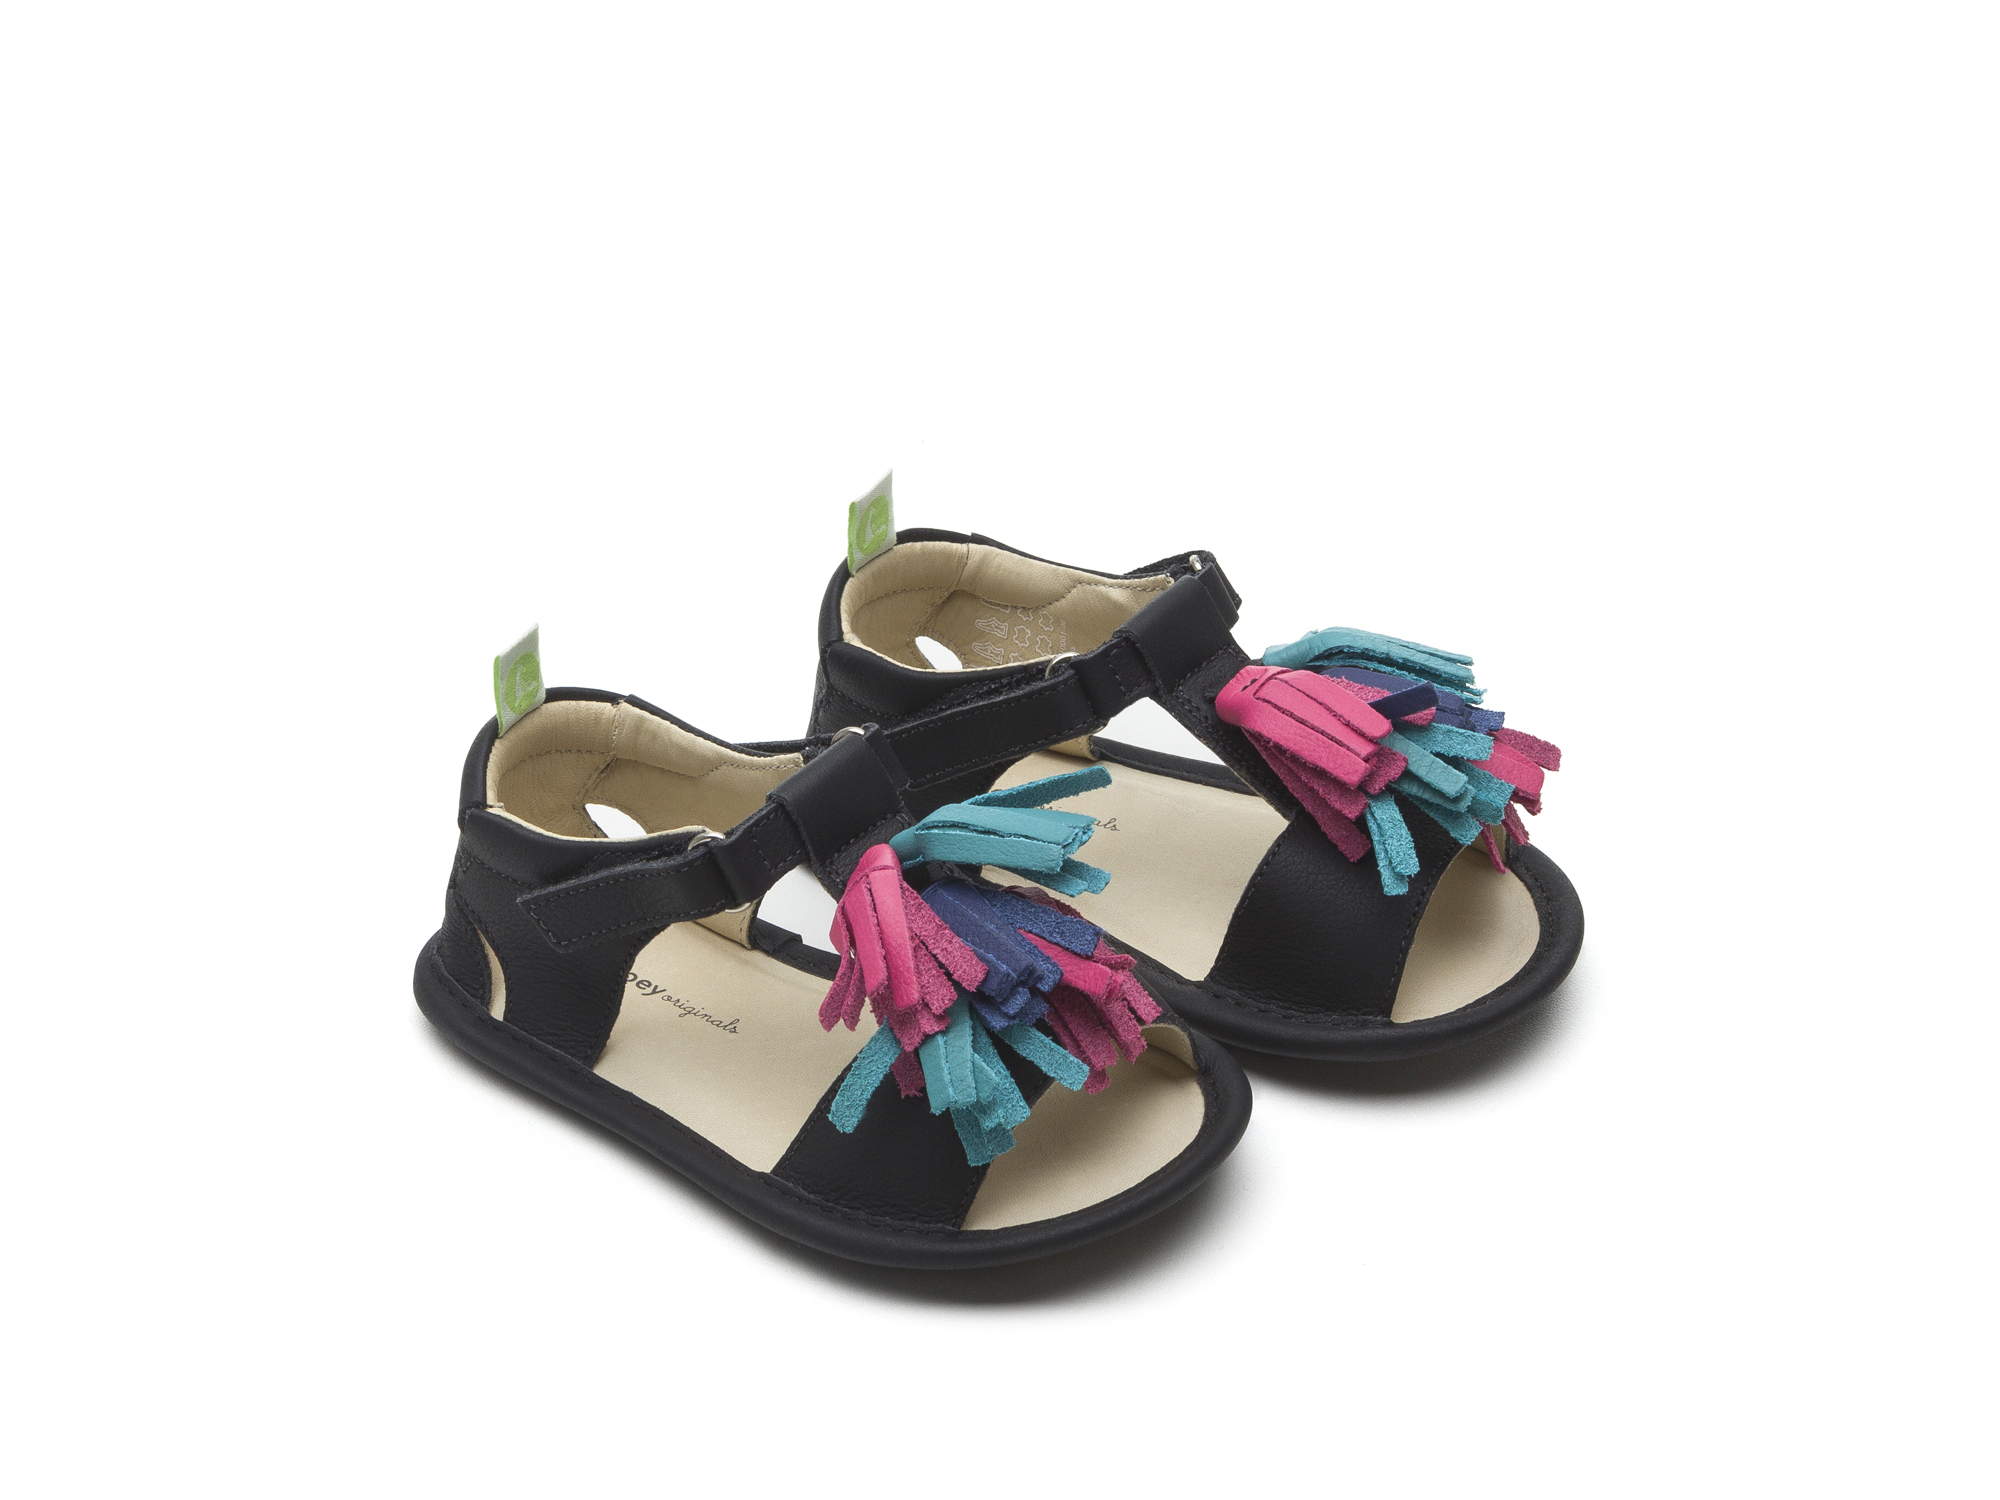 Sandal Folksy Black/ Tutti Frutti Baby for ages 0 to 2 years - 0